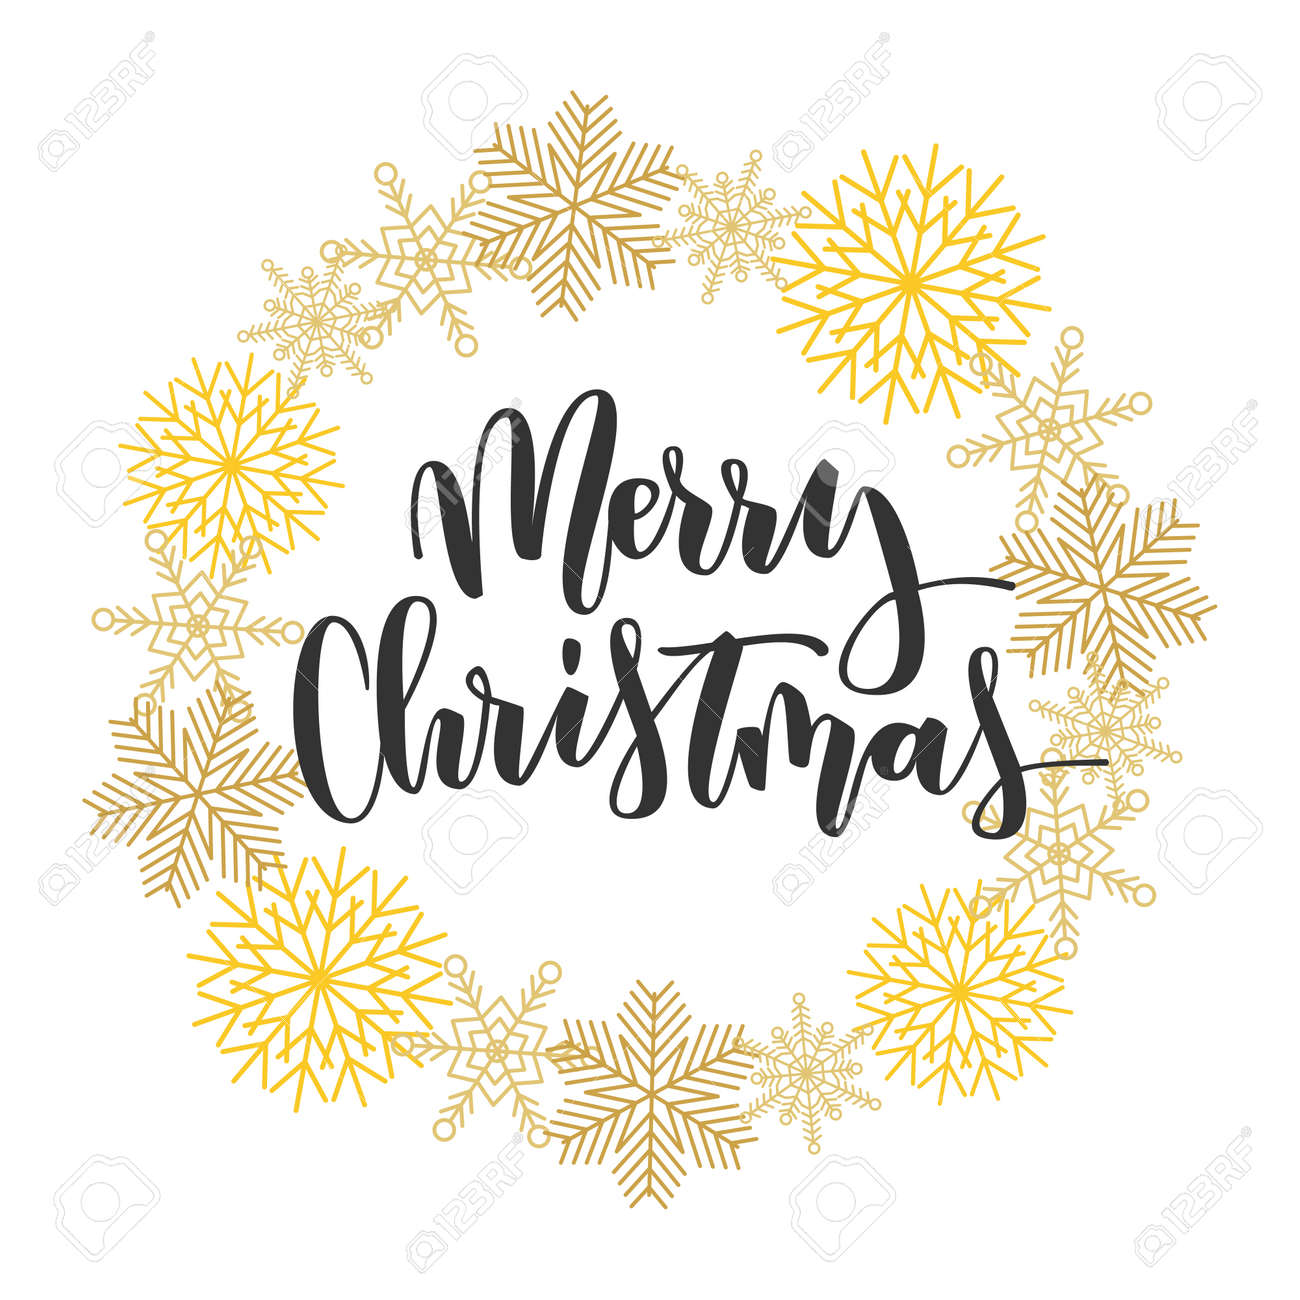 Merry Christmas Black Hand Written Inscription With Gold Snowflakes Wreath On White Background Stock Vector